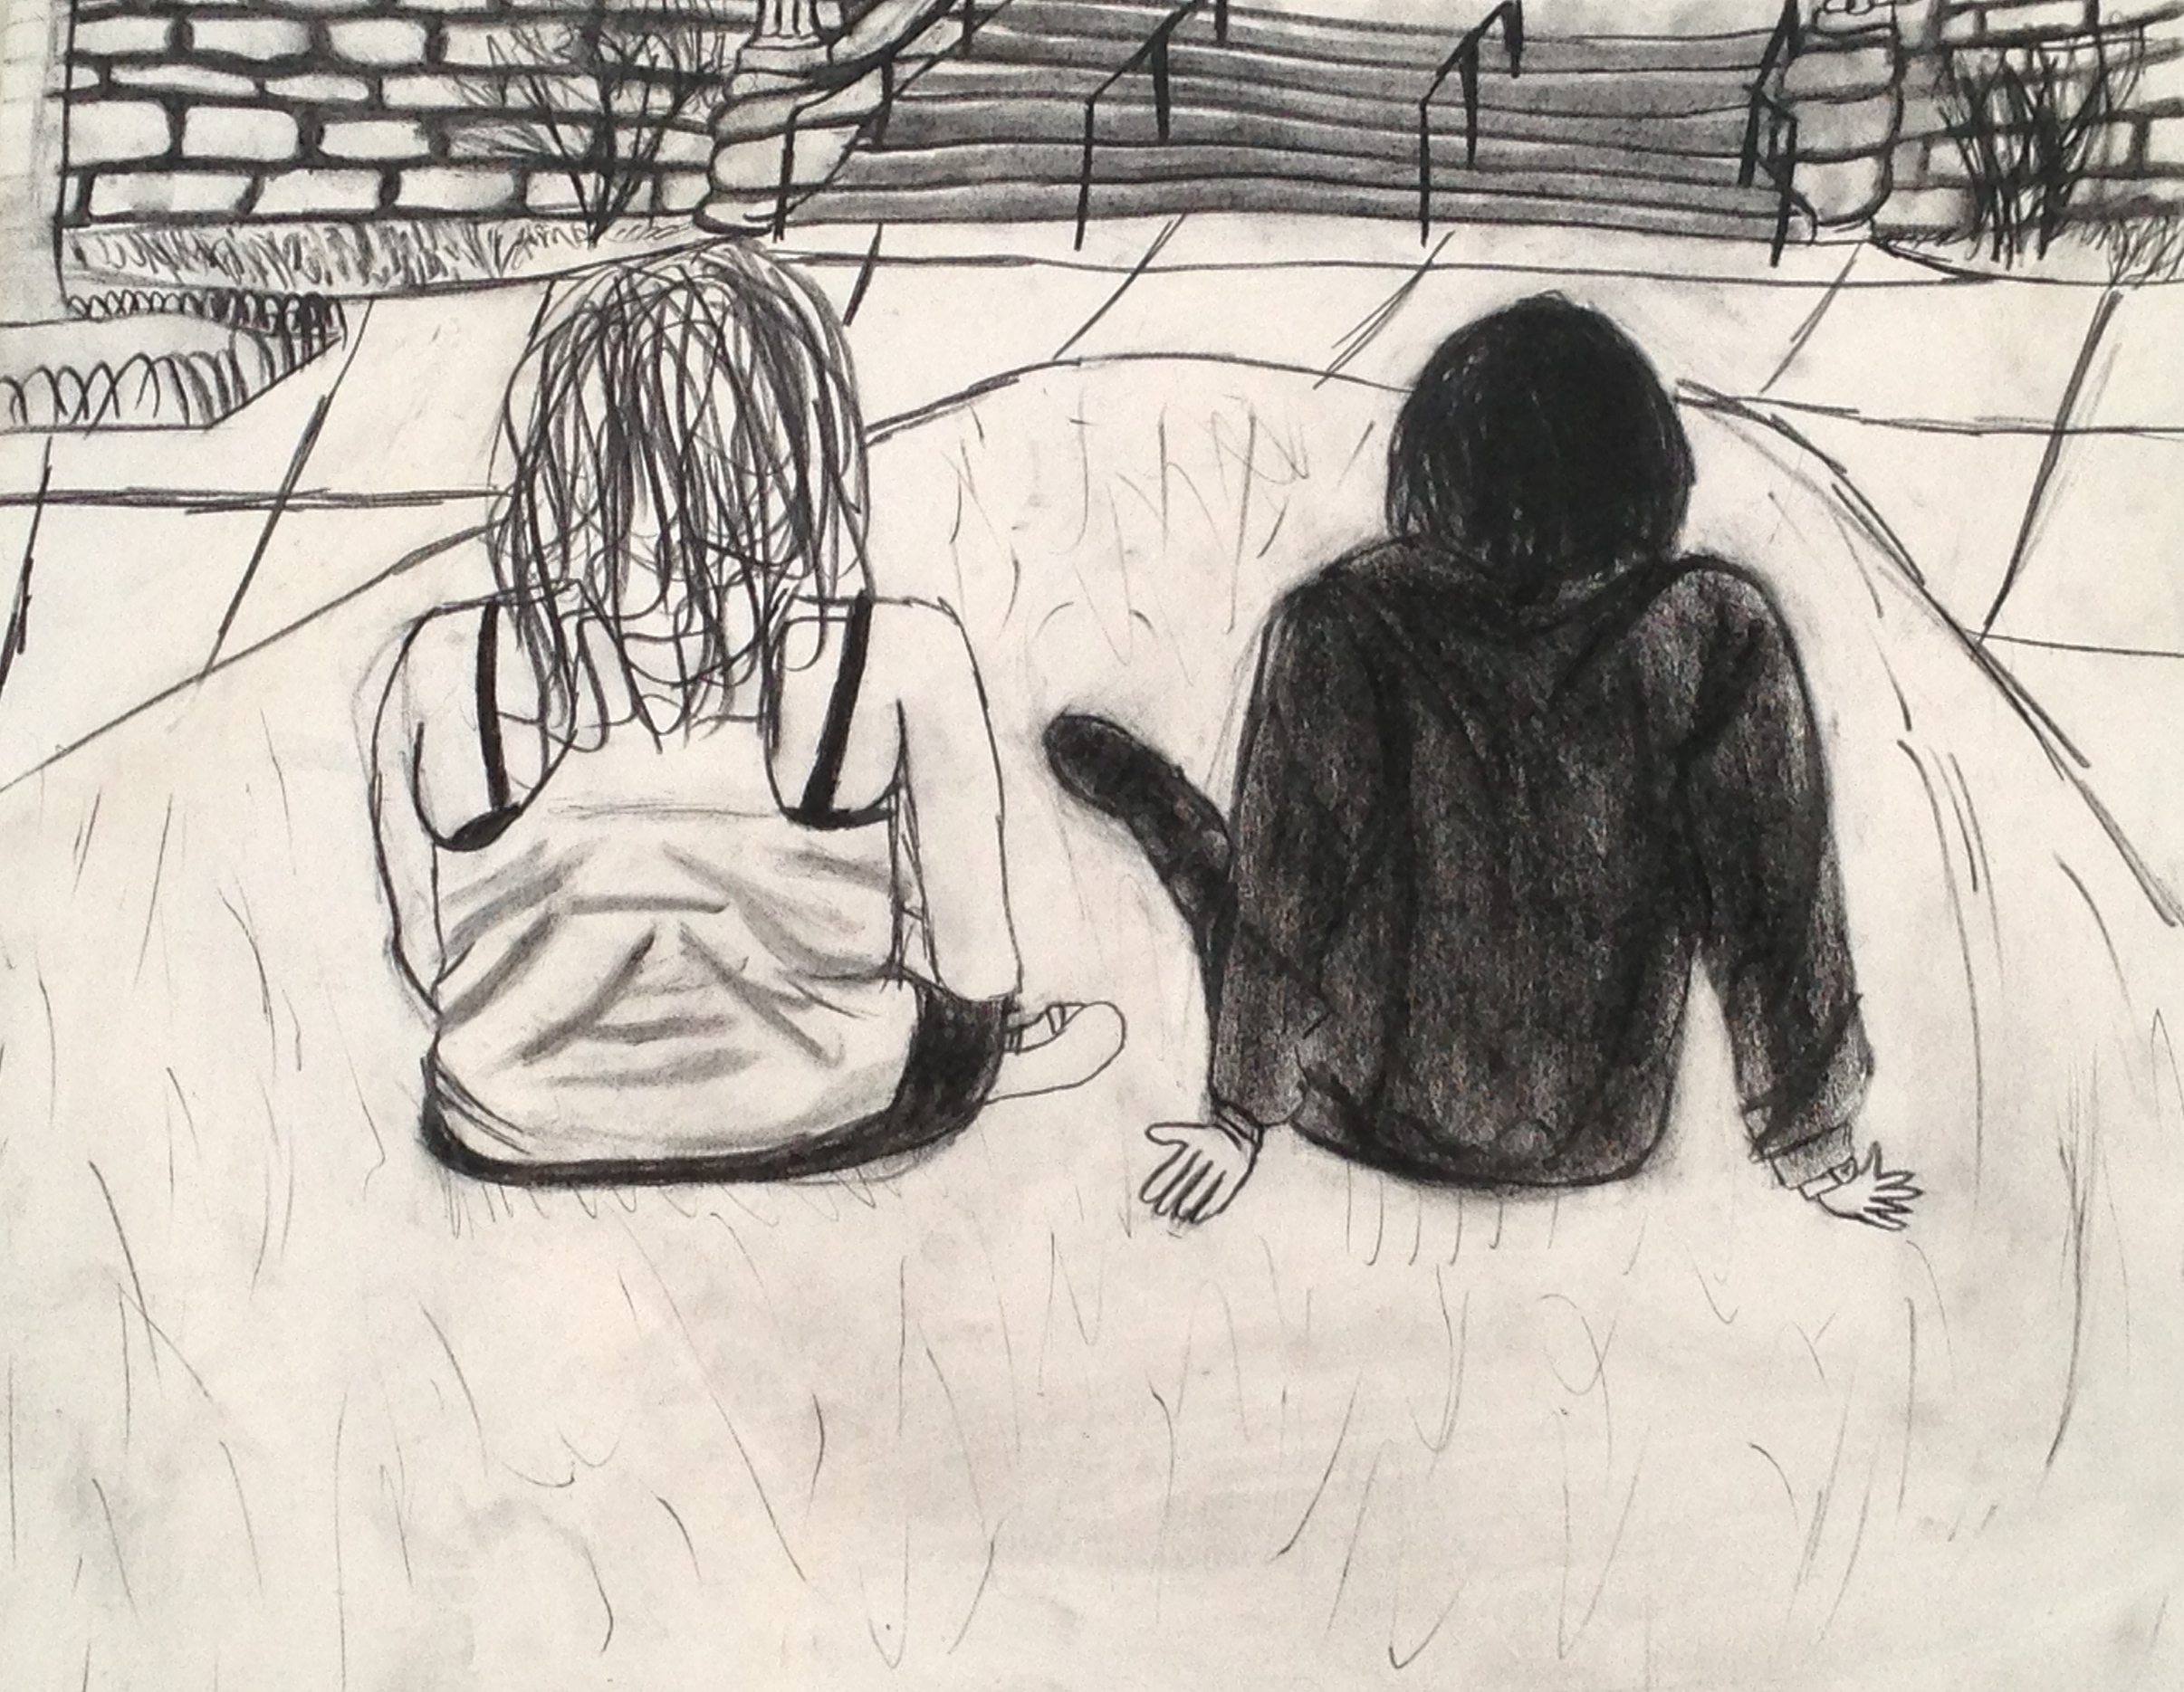 Chilling with a Friend  2013. Charcoal, conte crayon, and newsprint paper.